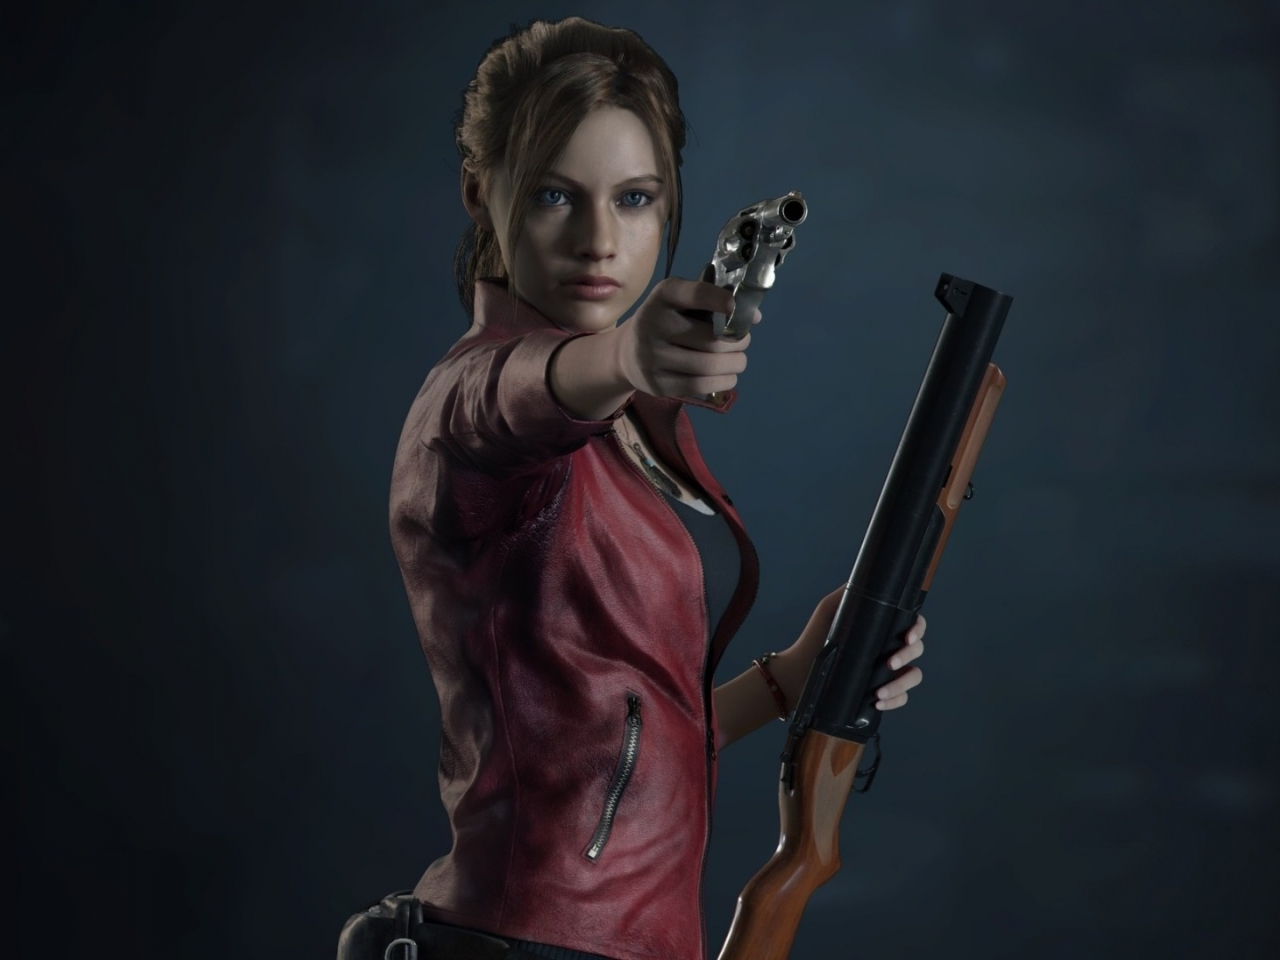 Resident Evil 2, video game, Claire Redfield, 1280x960 wallpaper